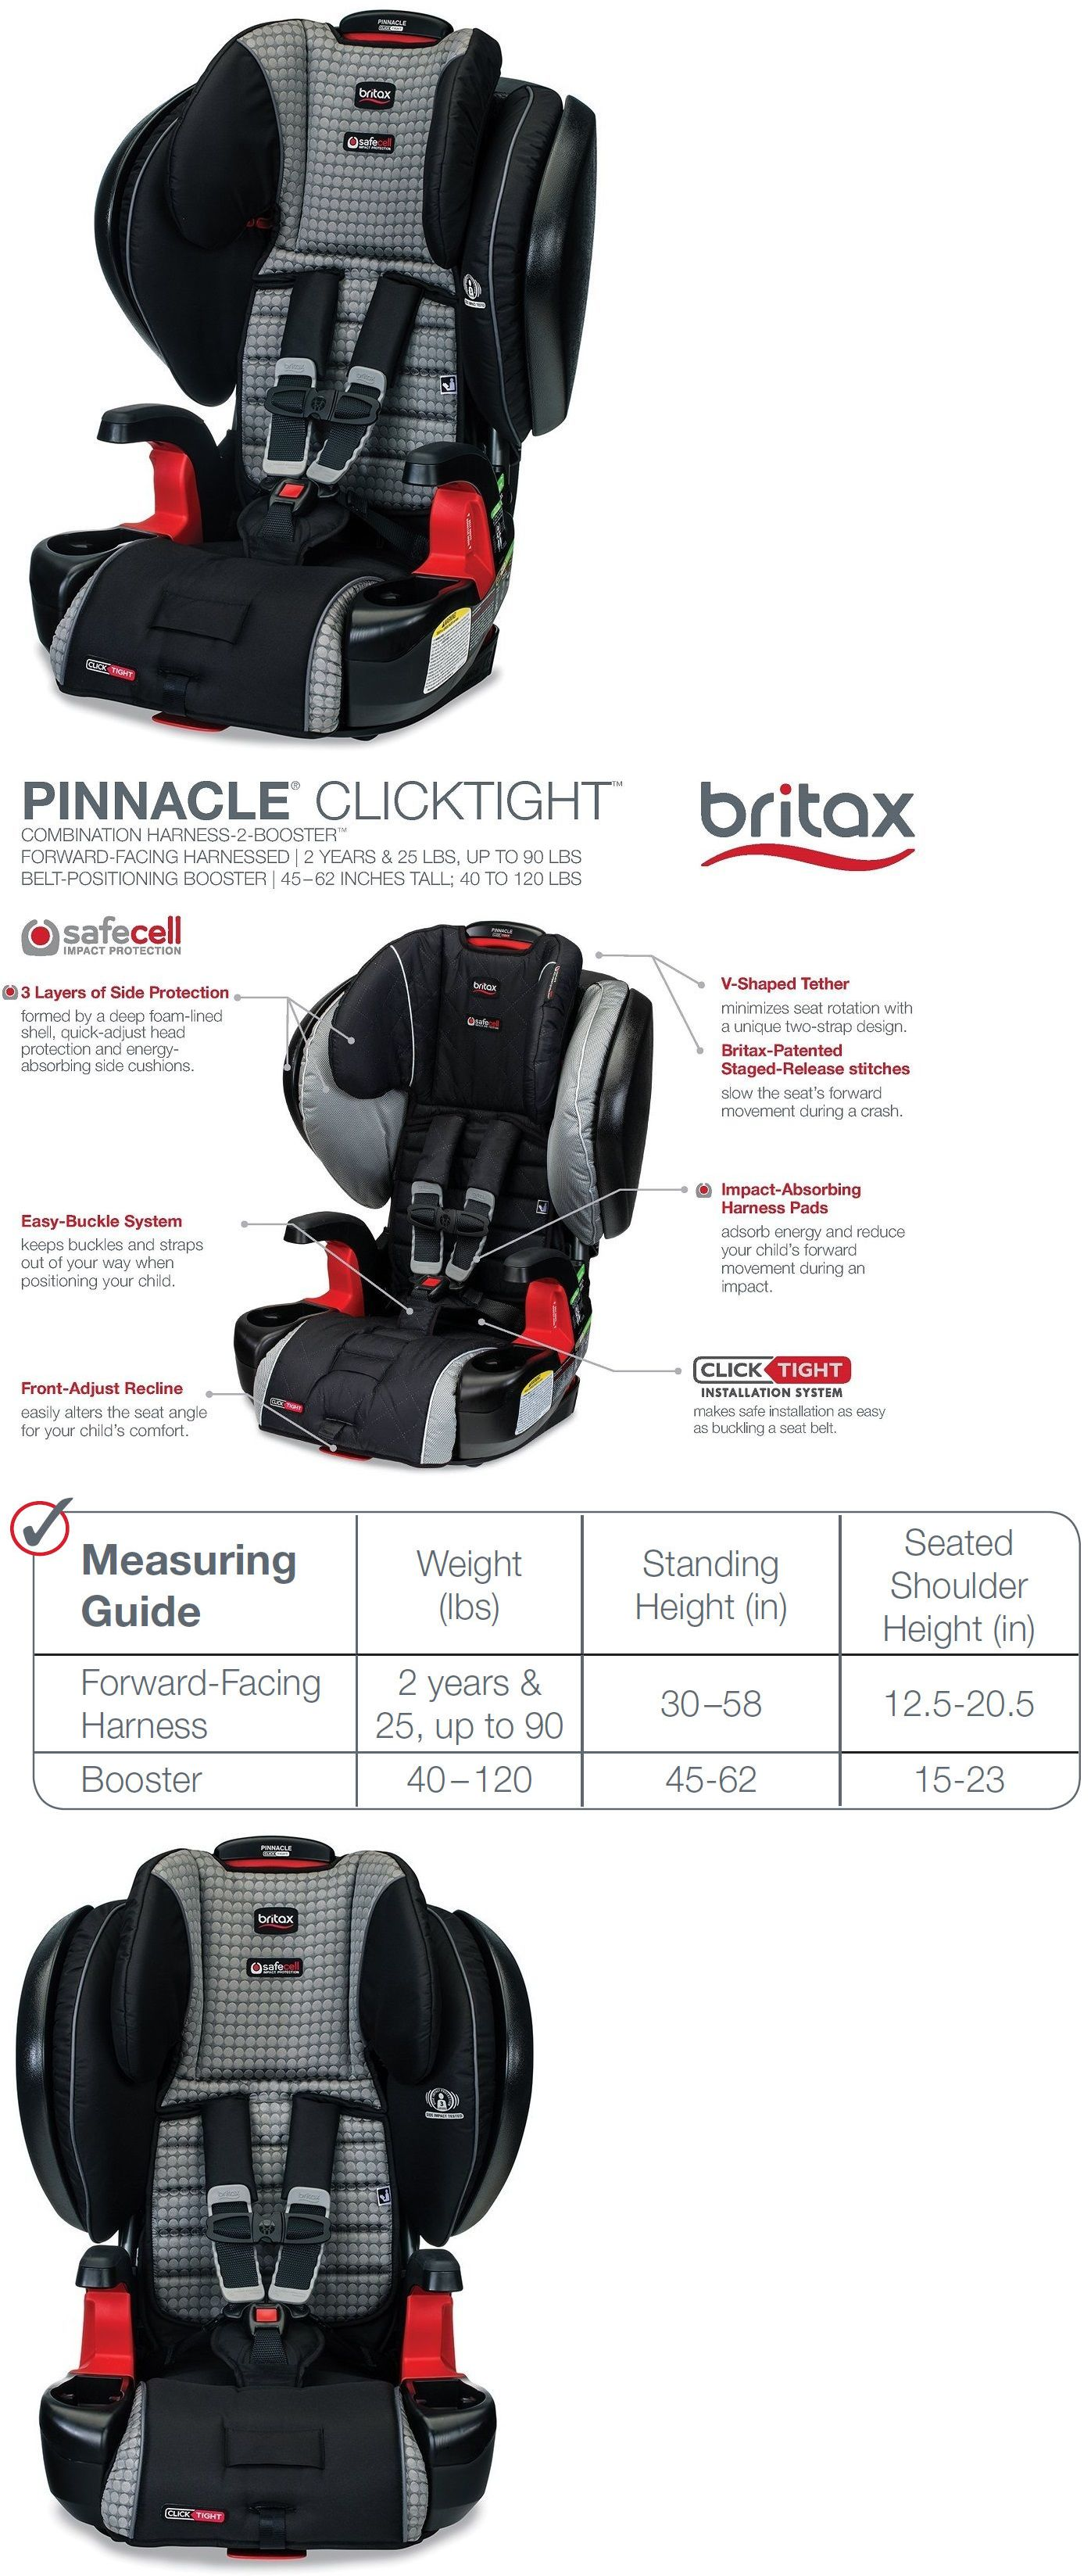 Other Car Safety Seats 2987 Britax Pinnacle Clicktight Combination Harness 2 Booster Seat 2017 Venti BUY IT NOW ONLY 312 On EBay